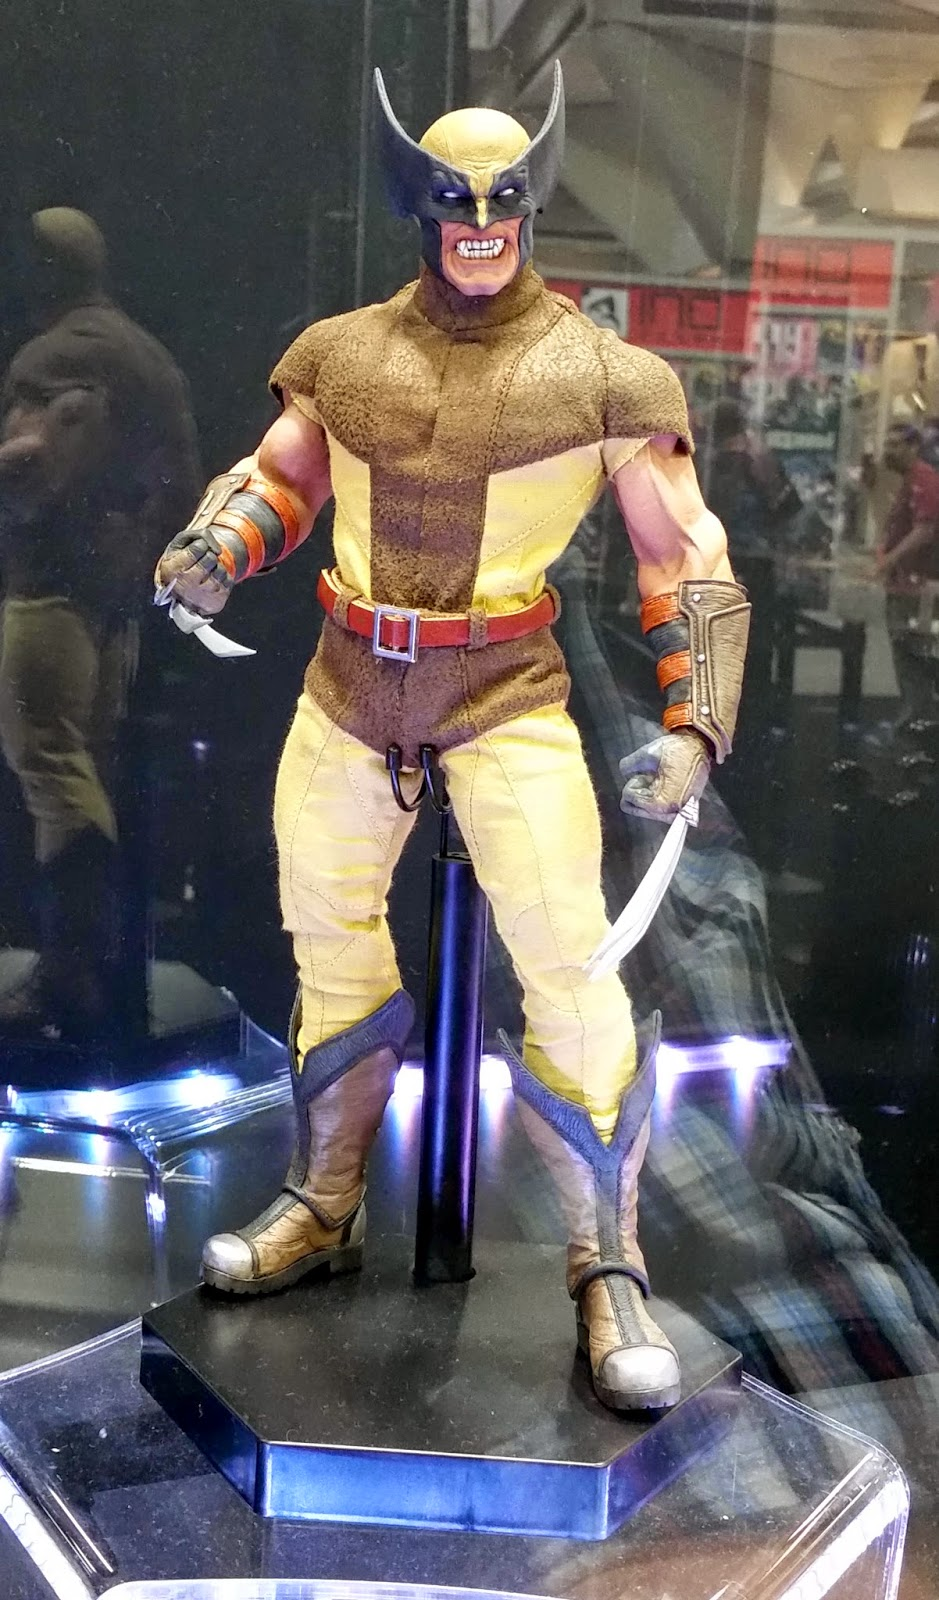 [Sideshow] Marvel Sixth Scale Collection - Wolverine - Página 2 SDCC_2014_SIDESHOW_COLLECTIBLES_1-6_SCALE_MARVEL_COMICS_WOLVERINE_01